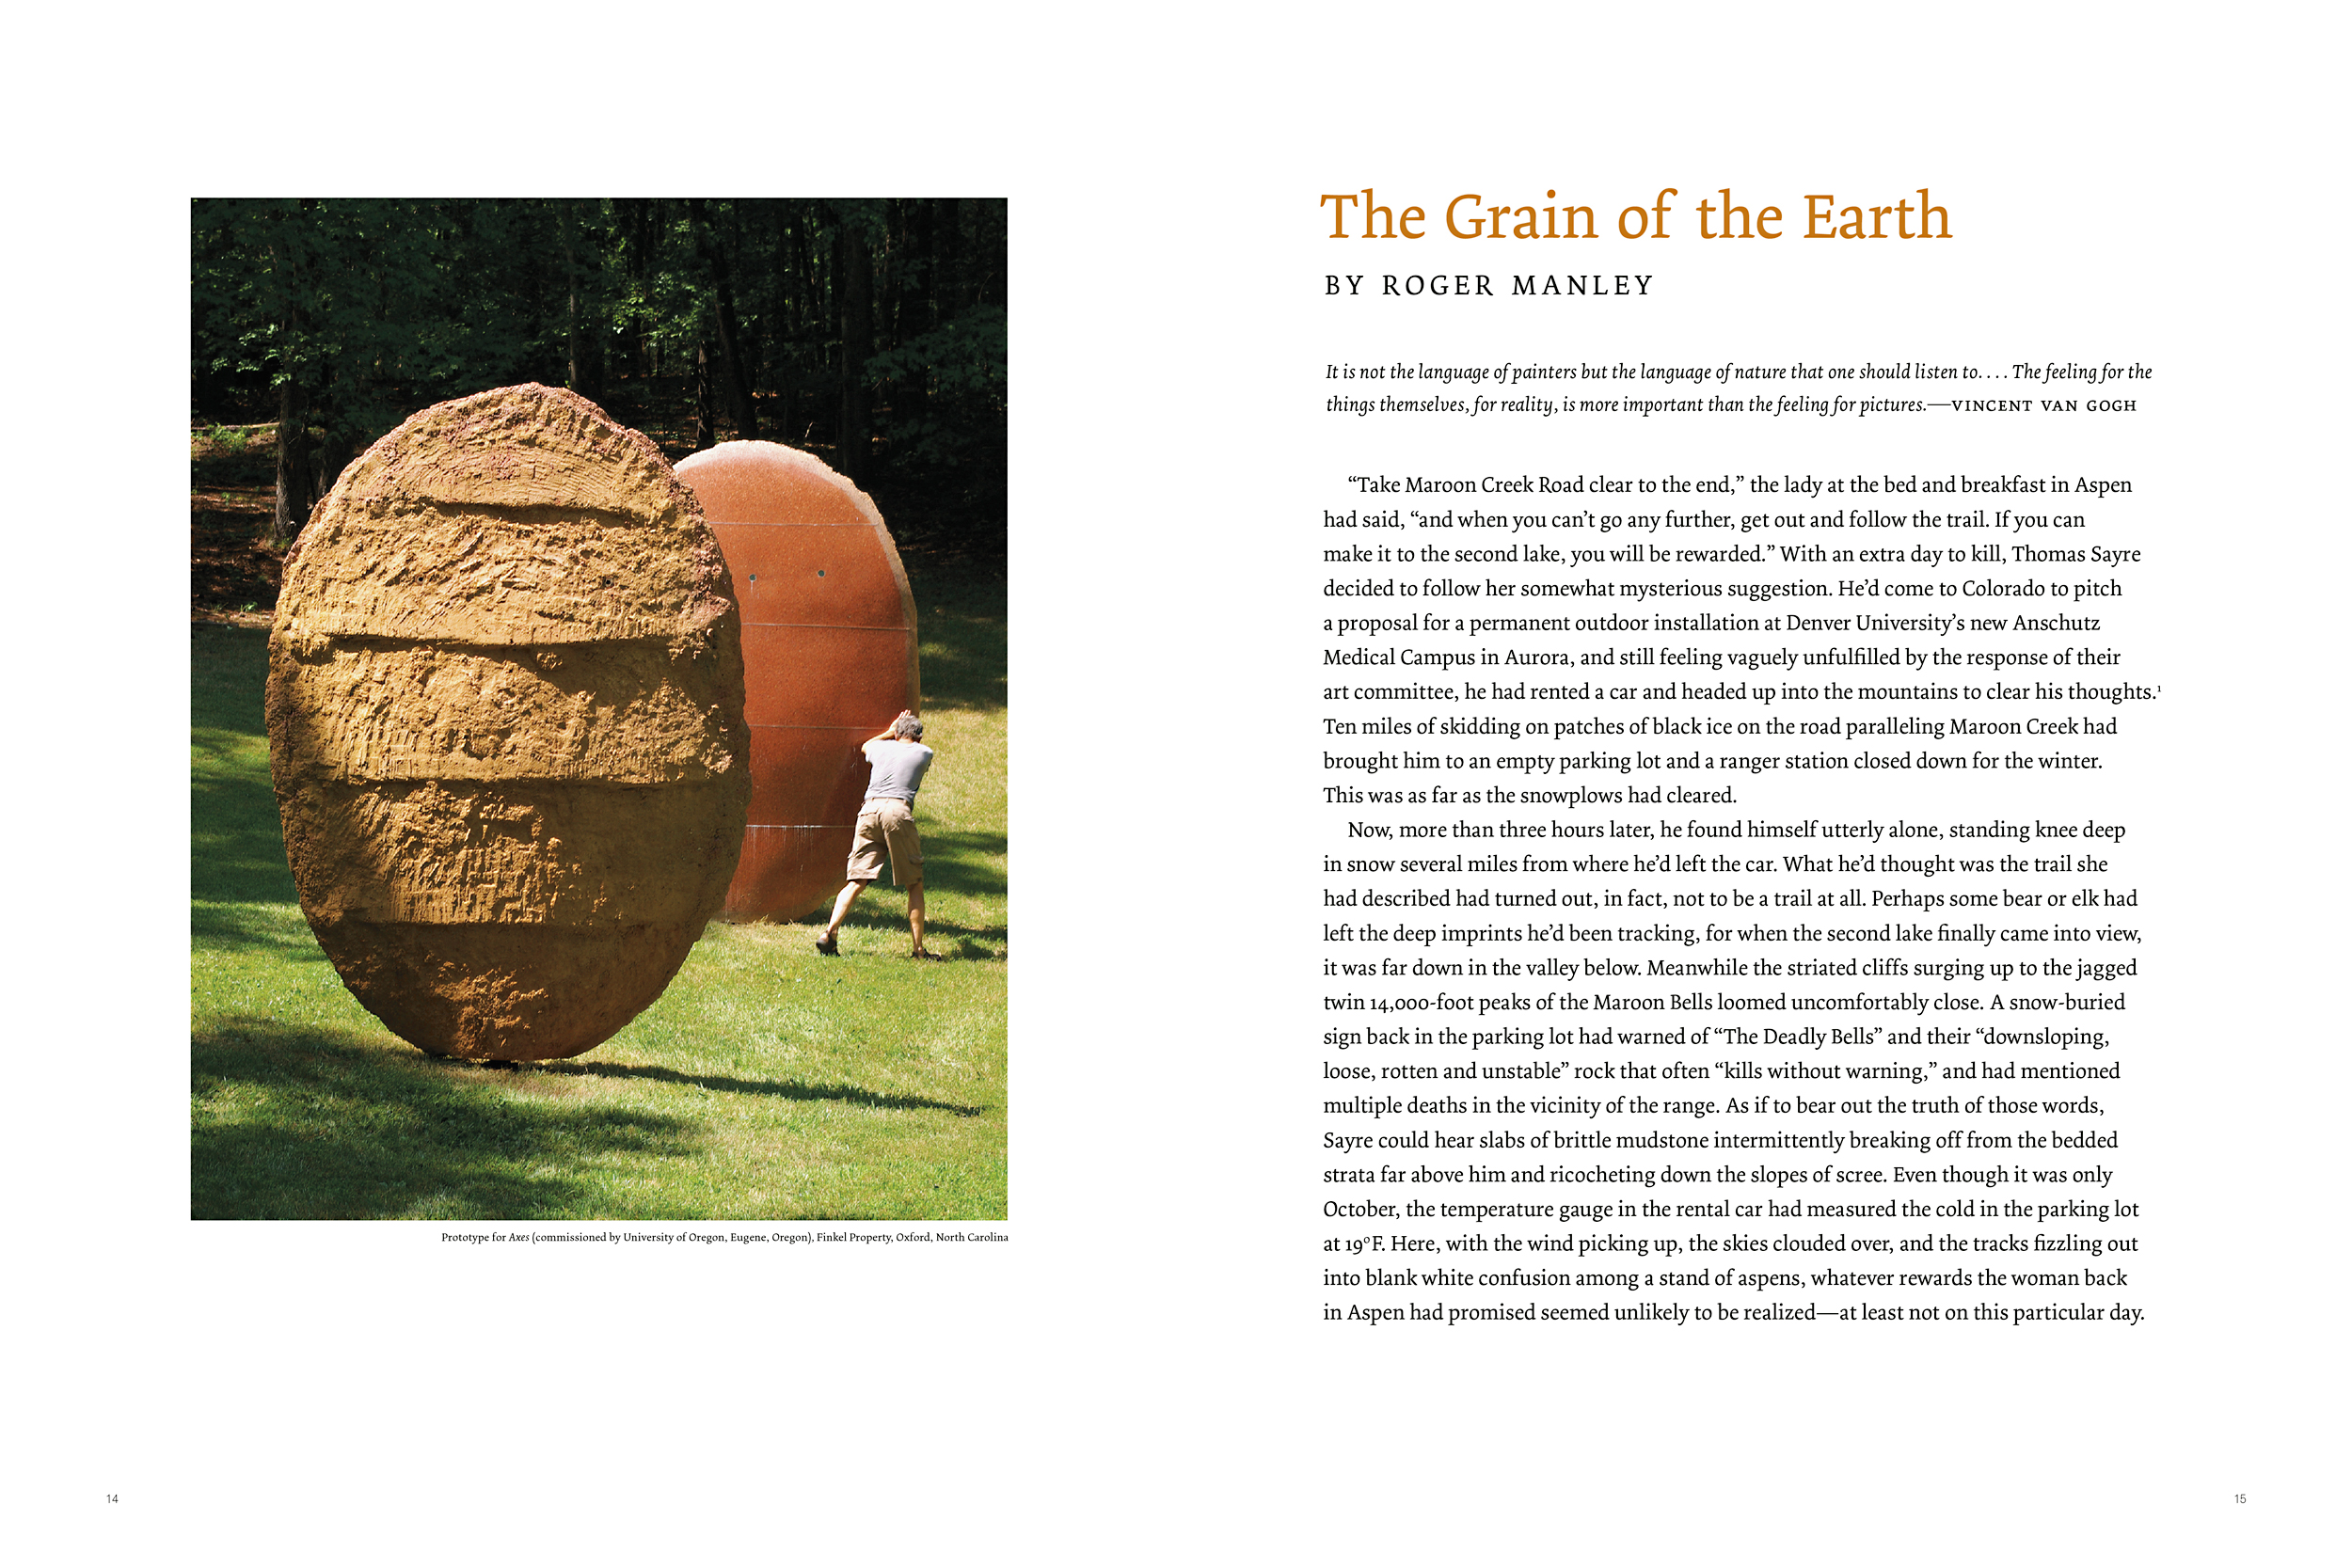 Opening spread by guest scholar (who is now the current director of the Gregg museum).